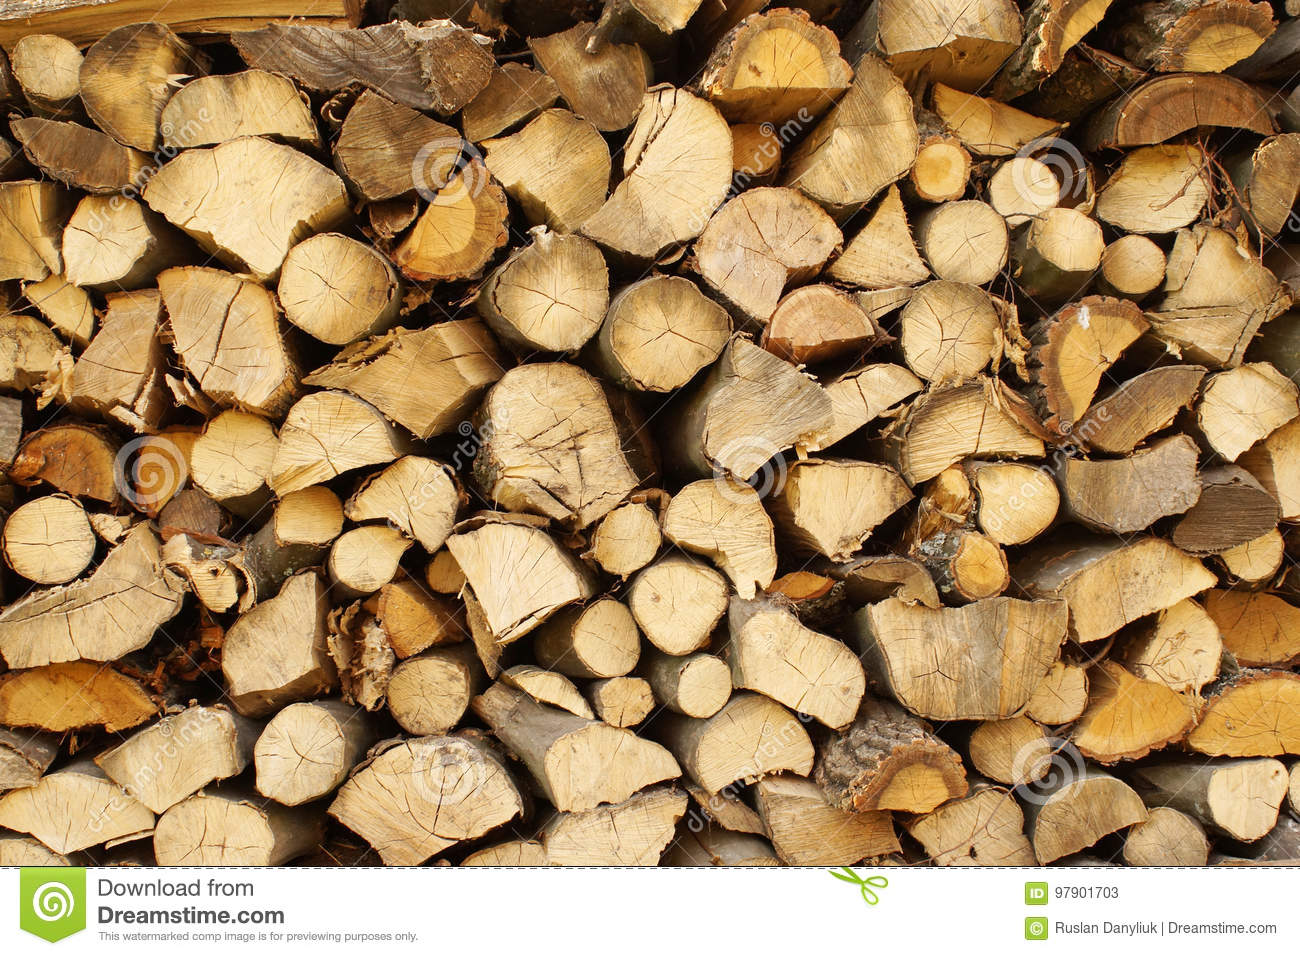 Chopped wood, stacked in a woodpile.